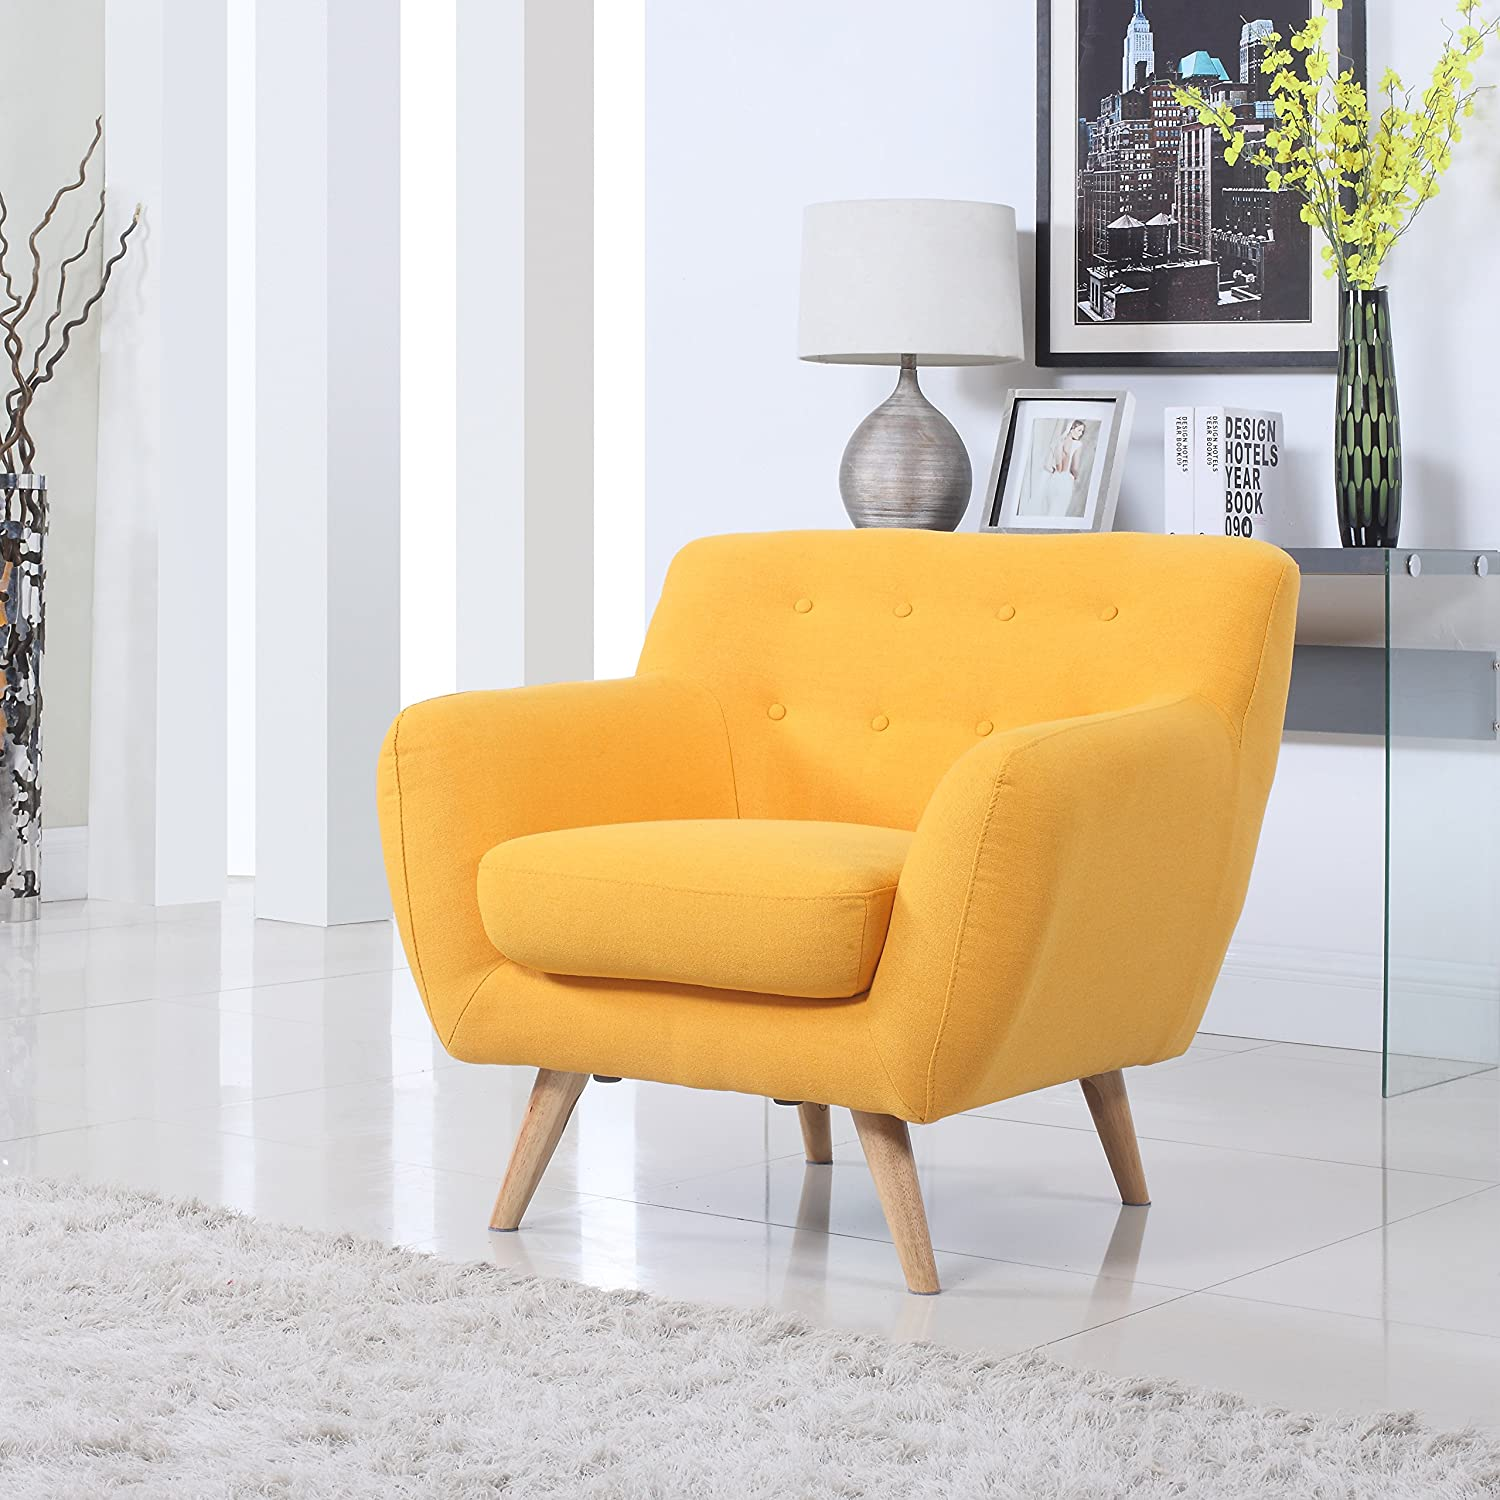 Furniture Living Room Seating Accent Chairs Yellow